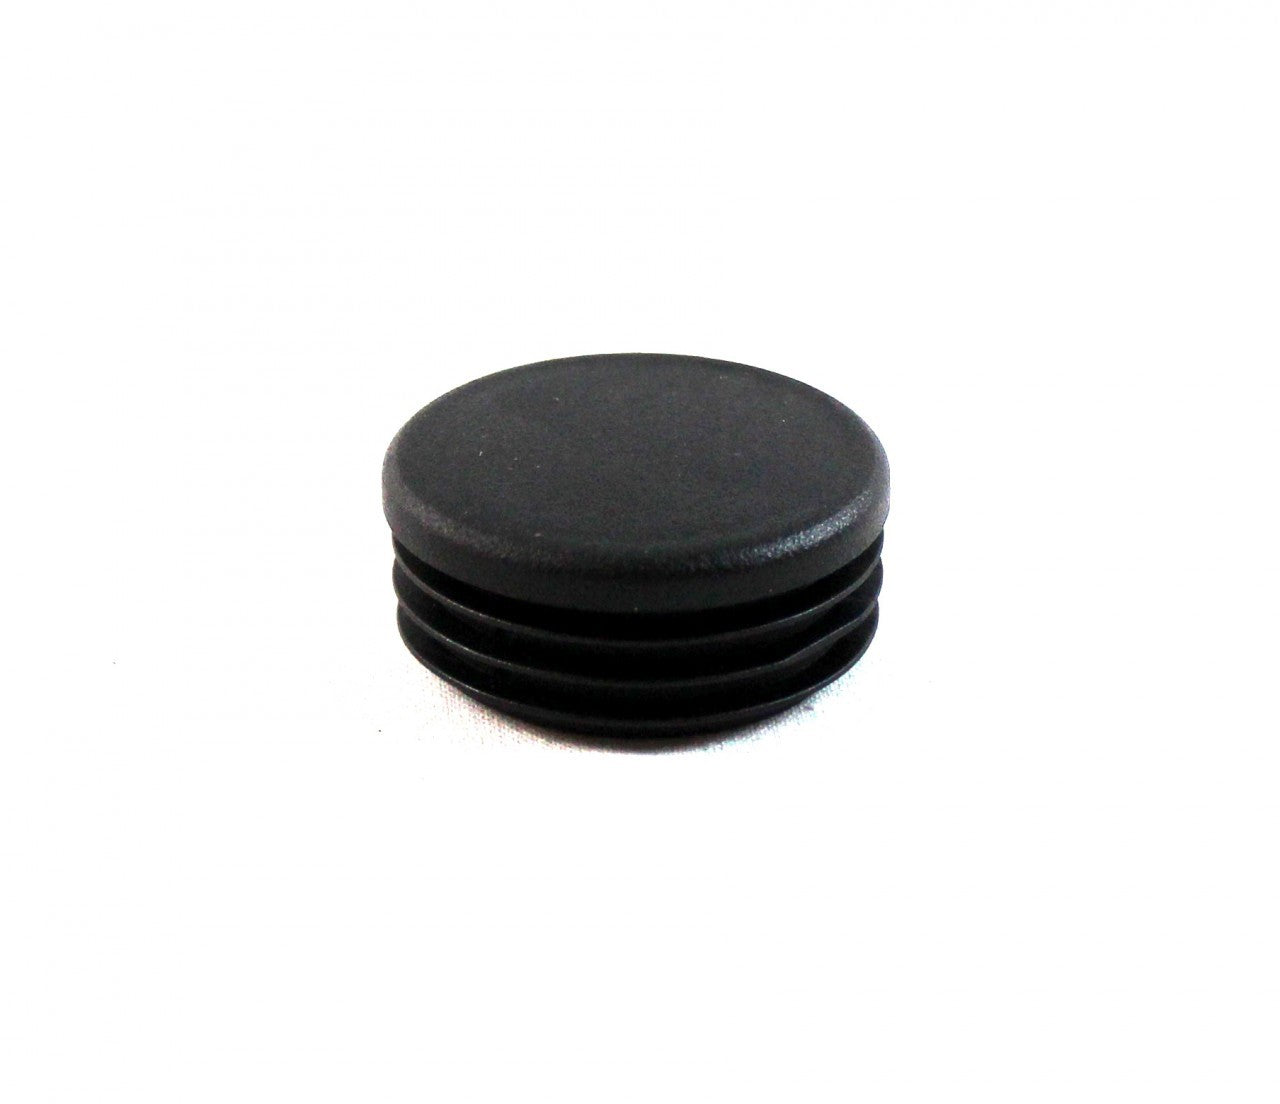 "Cap Insert Vinyl for 1 5/8"" Post"